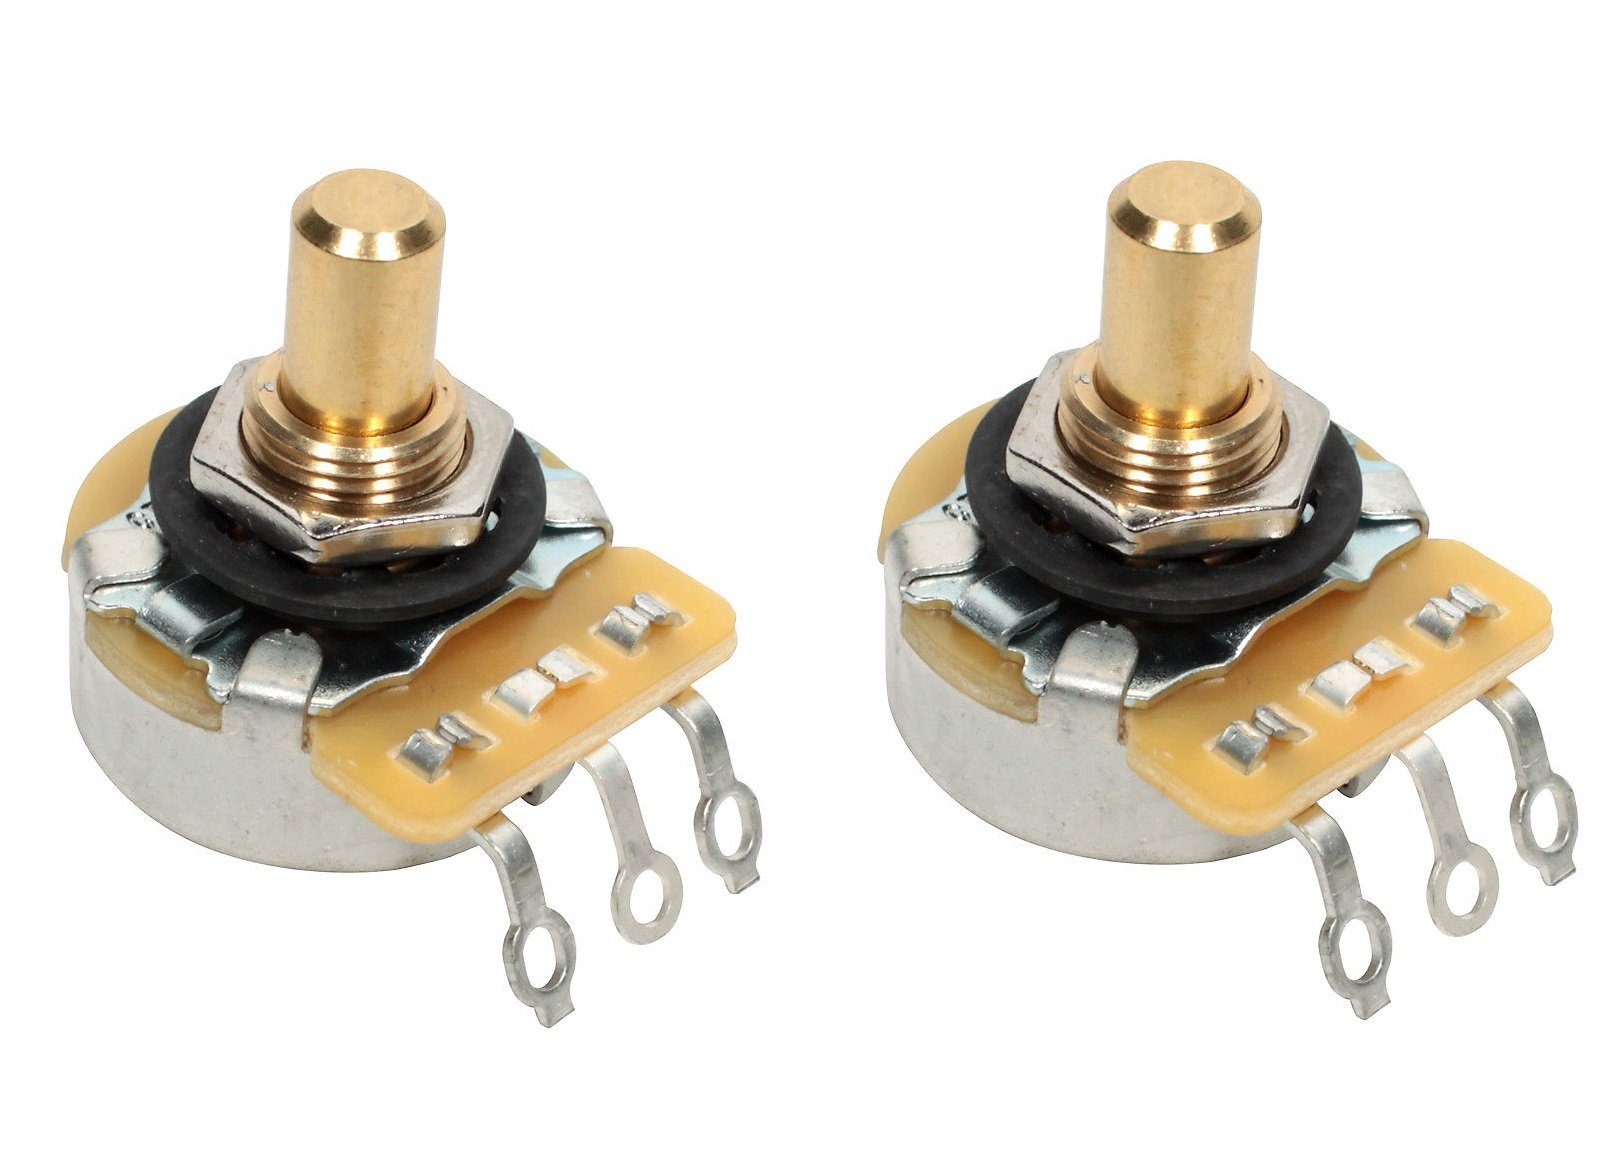 CTS 250K Short SOLID Shaft Audio Potentiometer/Pot - 450G Series - PAIR (2X)